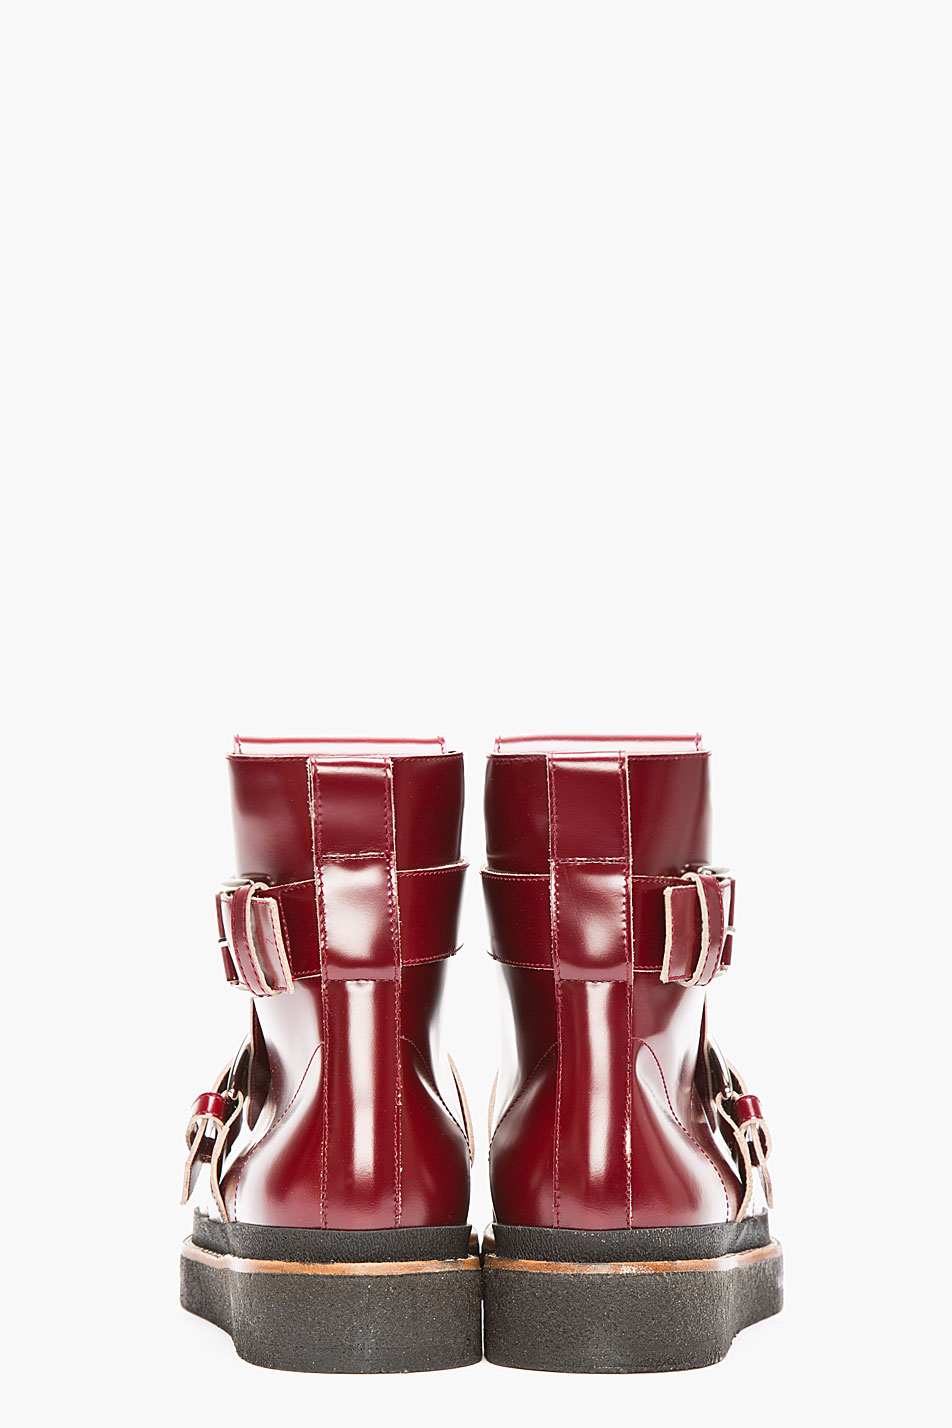 Marni Burgundy Leather Double Buckled Creeper Boots In Red